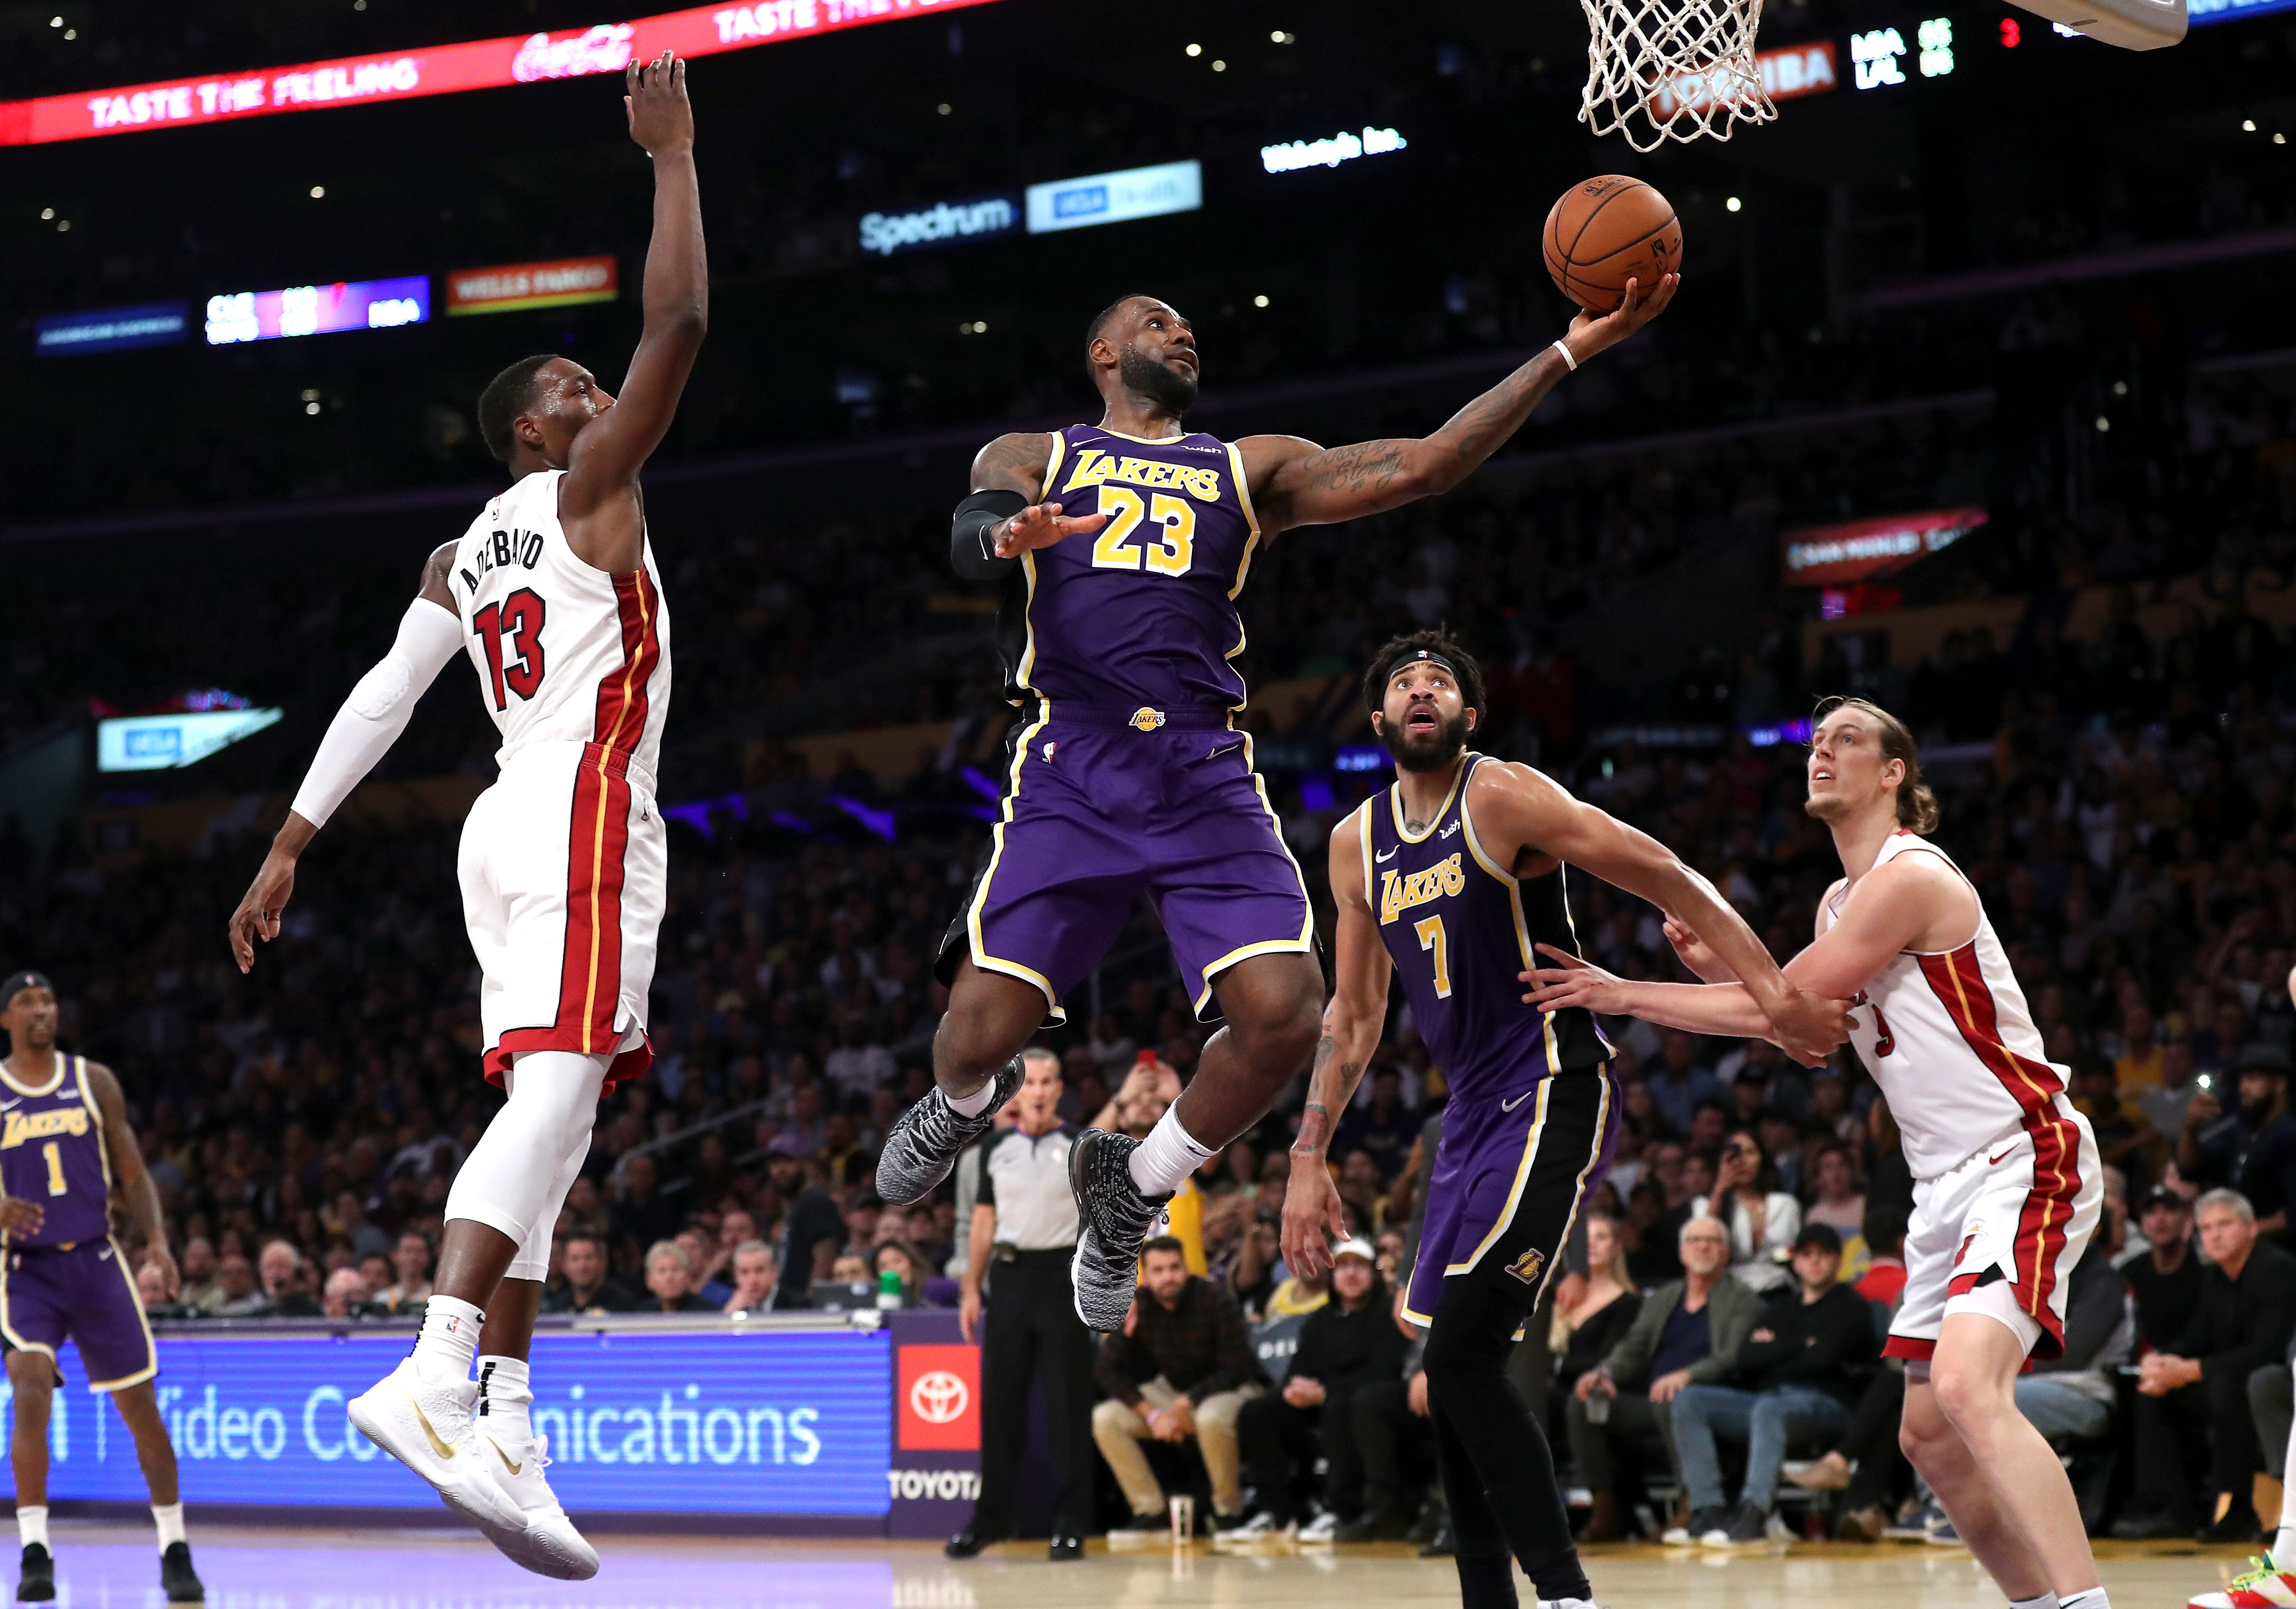 Miami Heat Vs Los Angeles Lakers Nba Finals Game 2 Score Updates Odds Time Tv Channel How To Watch Free Live Stream Online 10 2 2020 Oregonlive Com